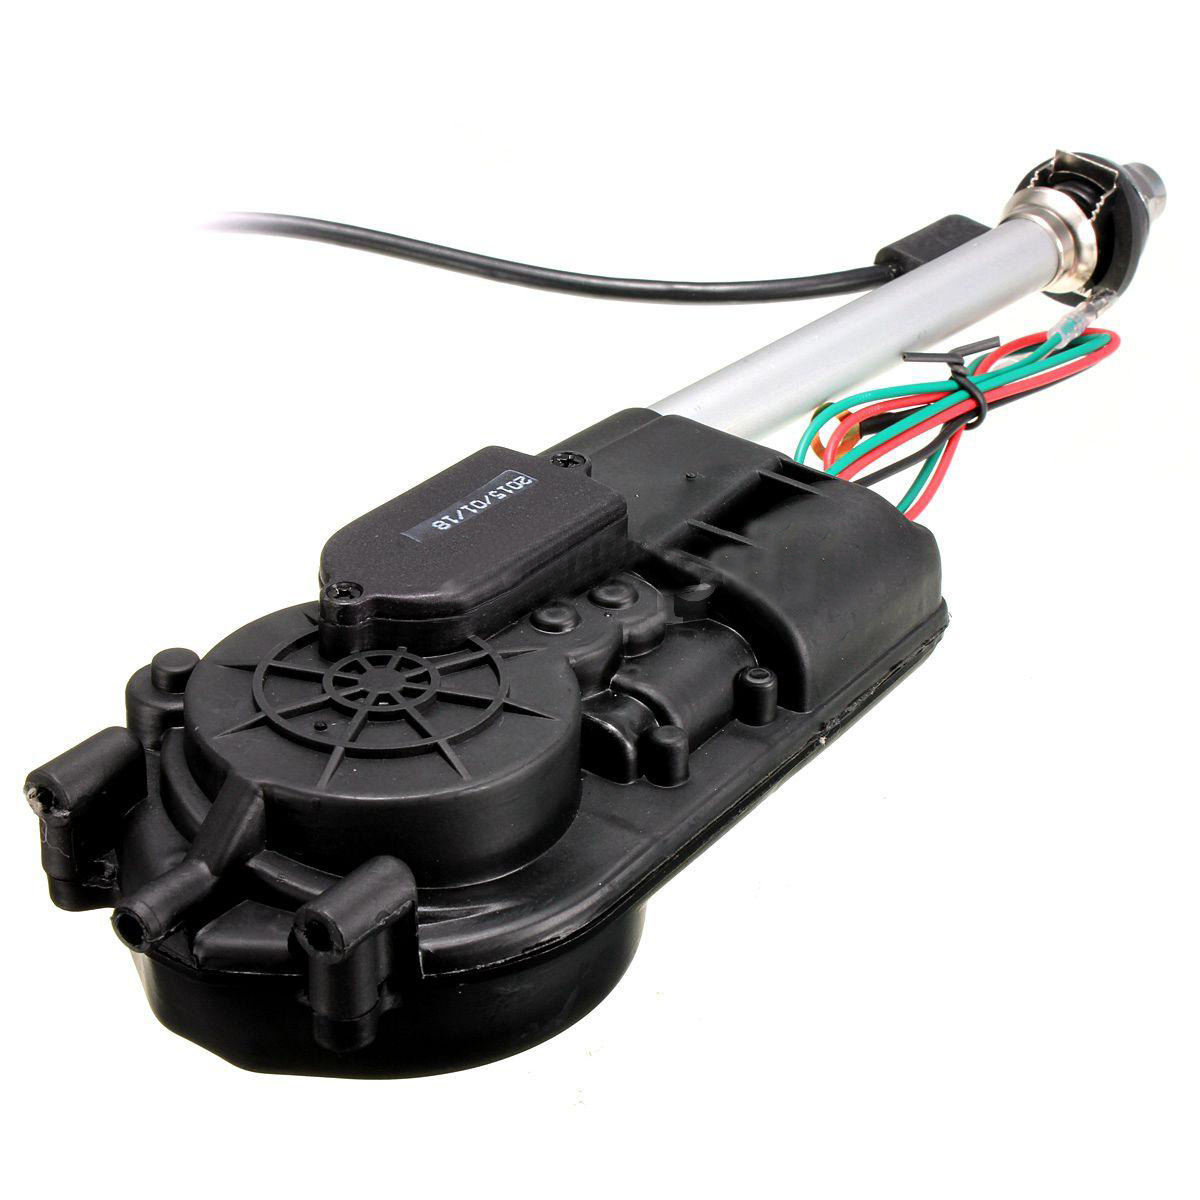 Radio Shack Electric Motor Kit: Car Electric Aerial Radio Automatic Booster Power Antenna